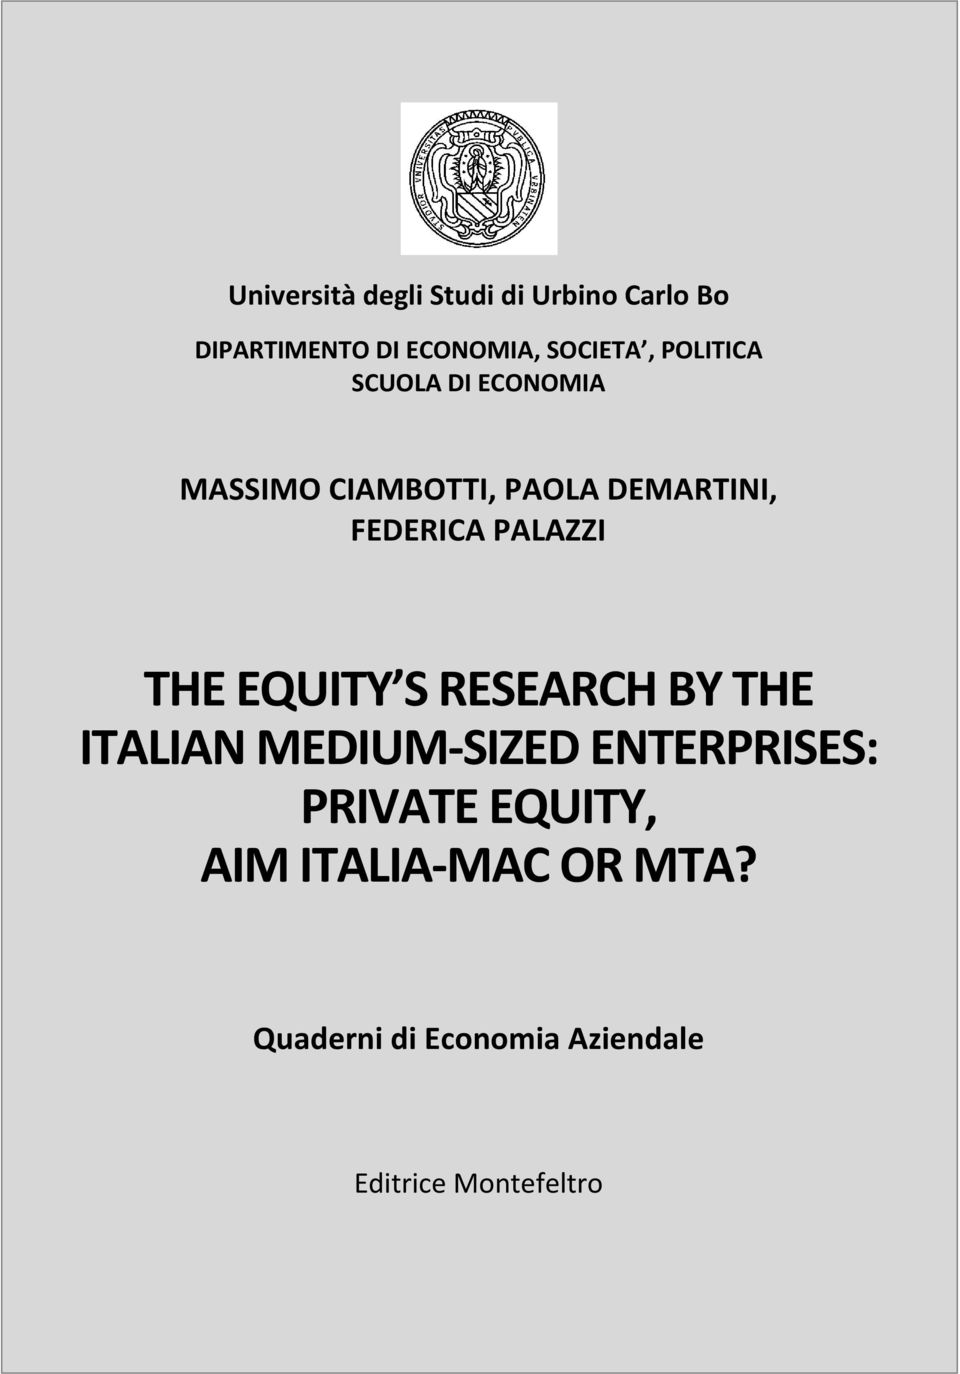 PALAZZI THE EQUITY S RESEARCH BY THE ITALIAN MEDIUM SIZED ENTERPRISES: PRIVATE